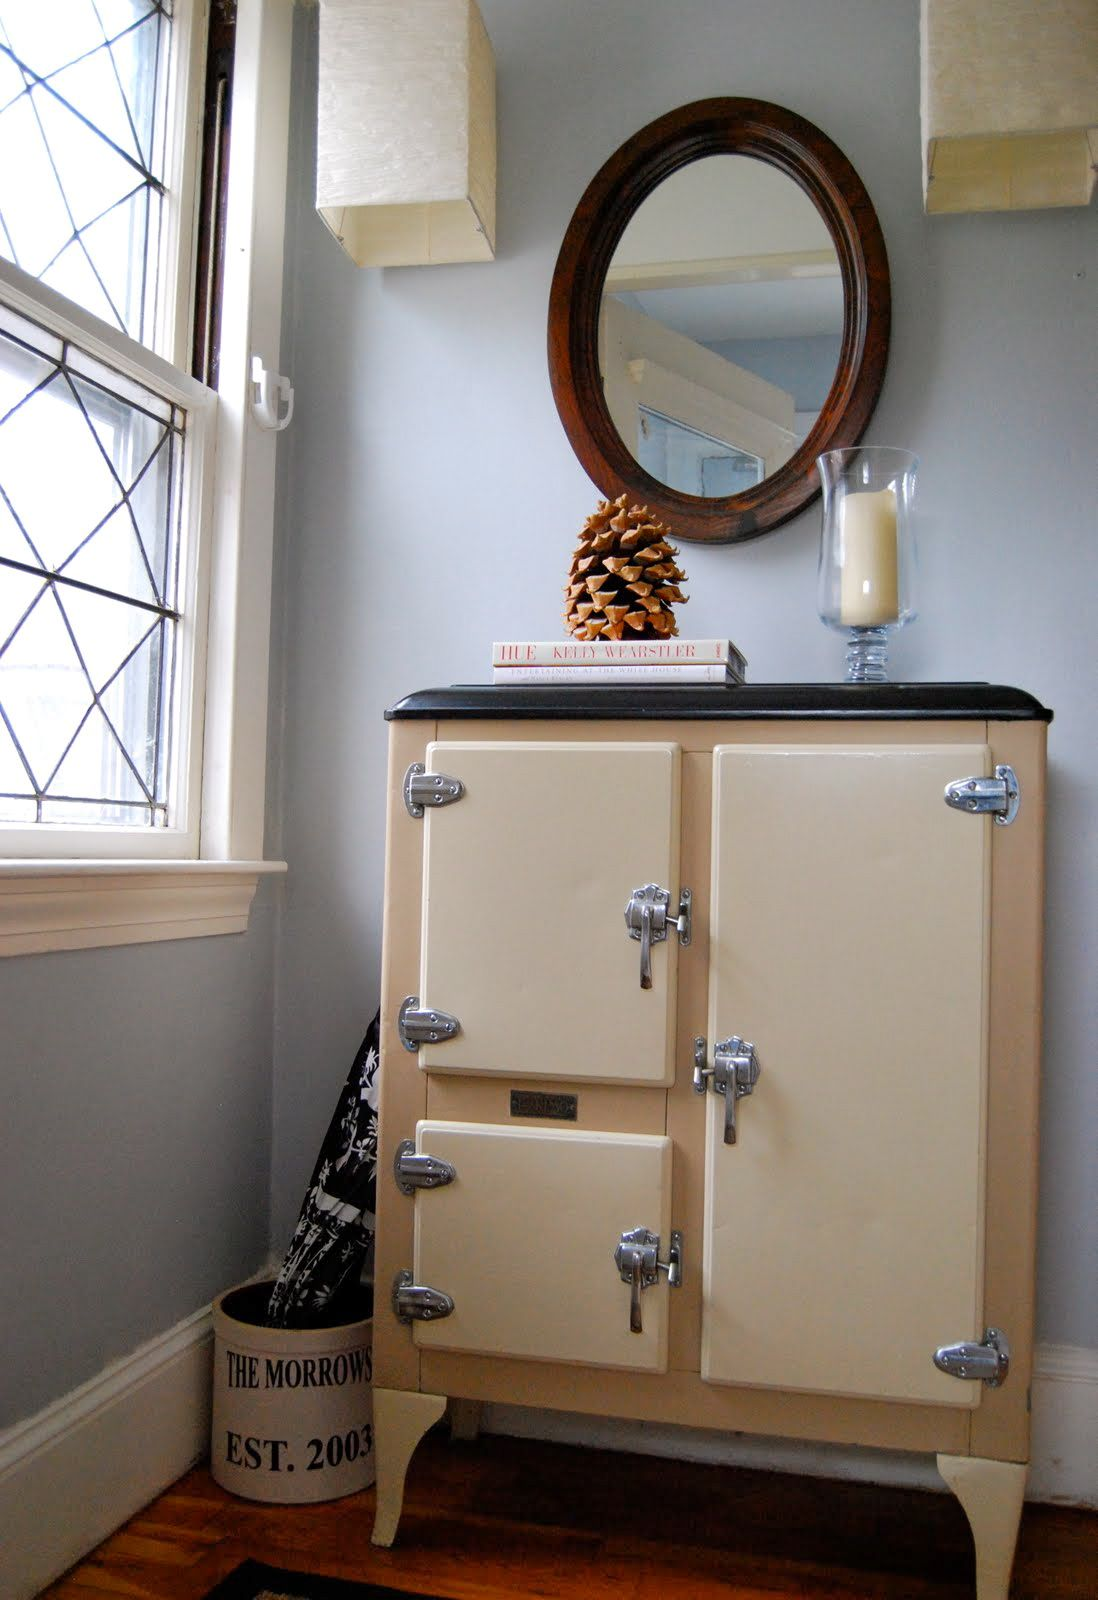 Old Vintage Ice Box Or Small Fridge As Bathroom Storage